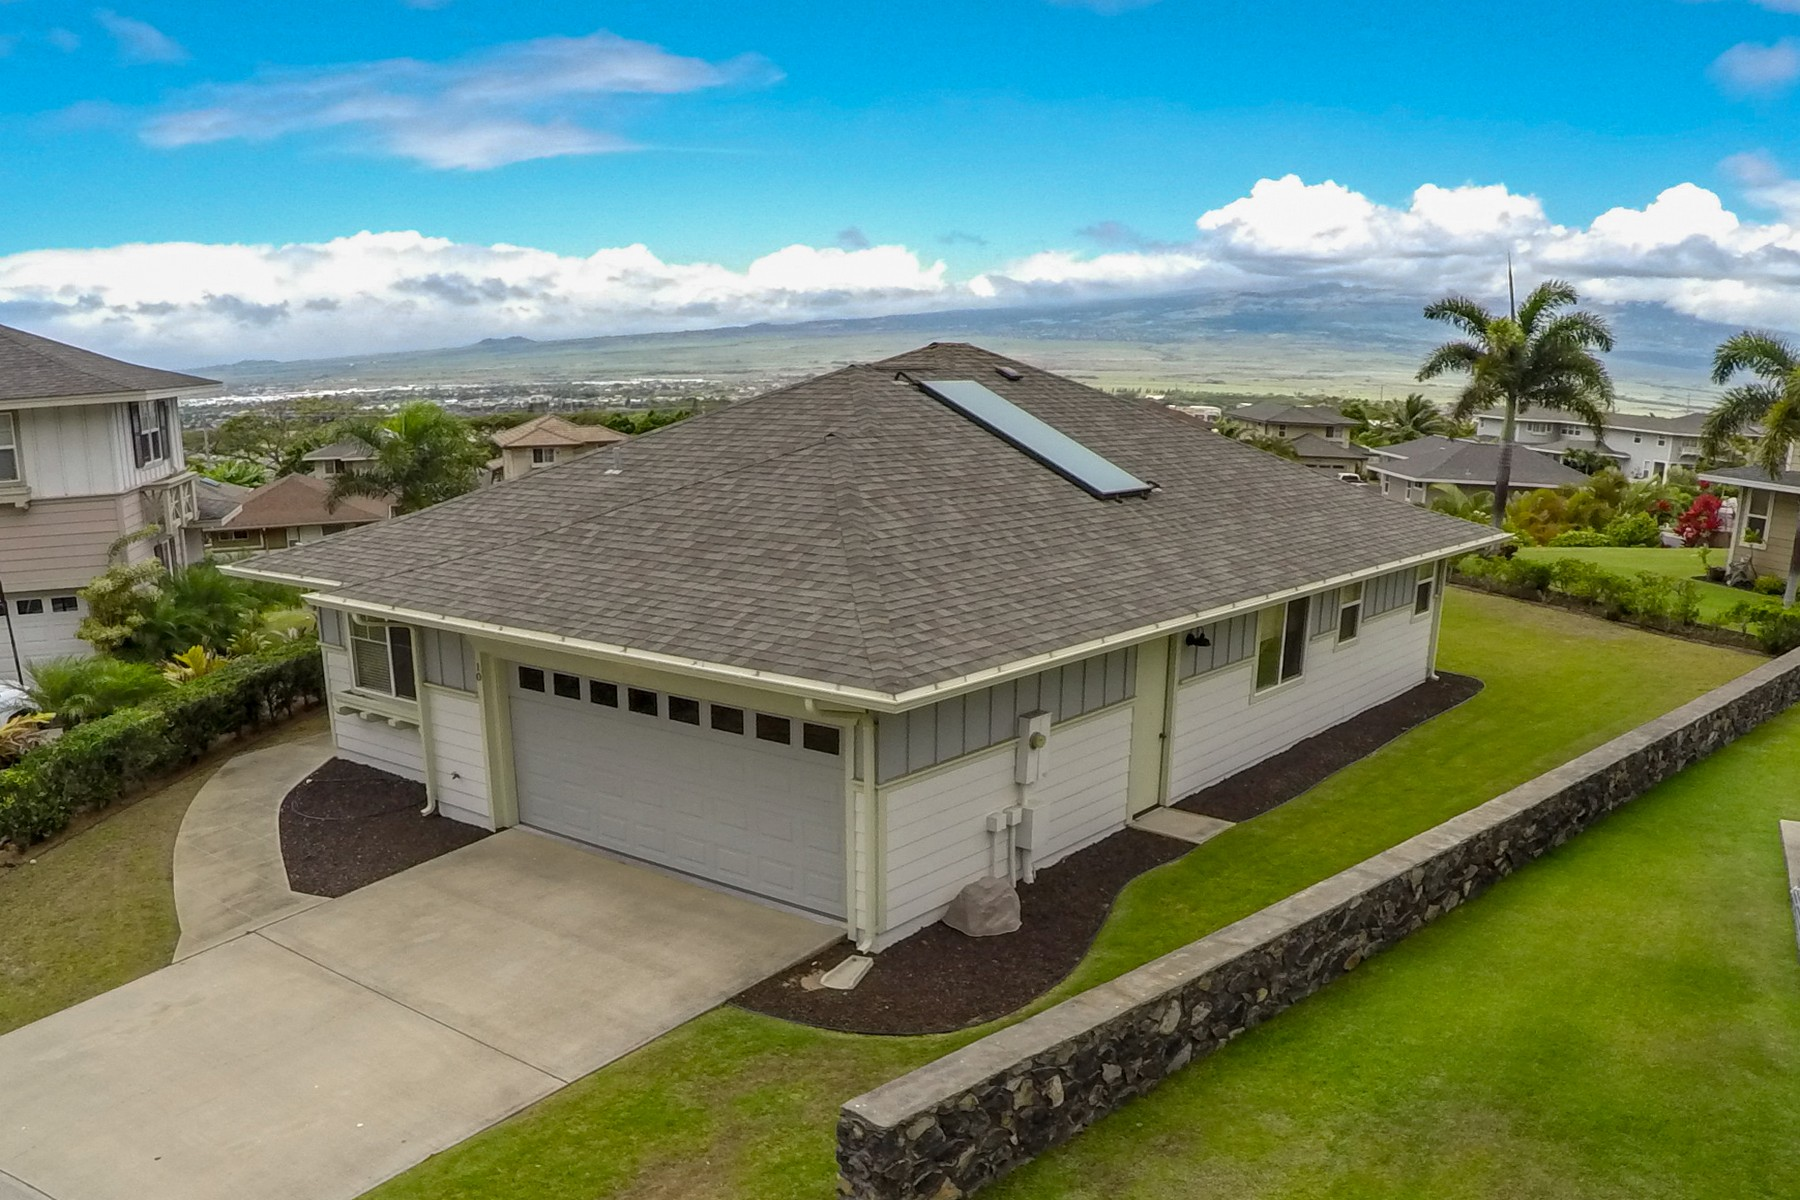 Single Family Home for Sale at Single Level-Central Maui-Ocean View 10 Nanakula Place Wailuku, Hawaii 96793 United States